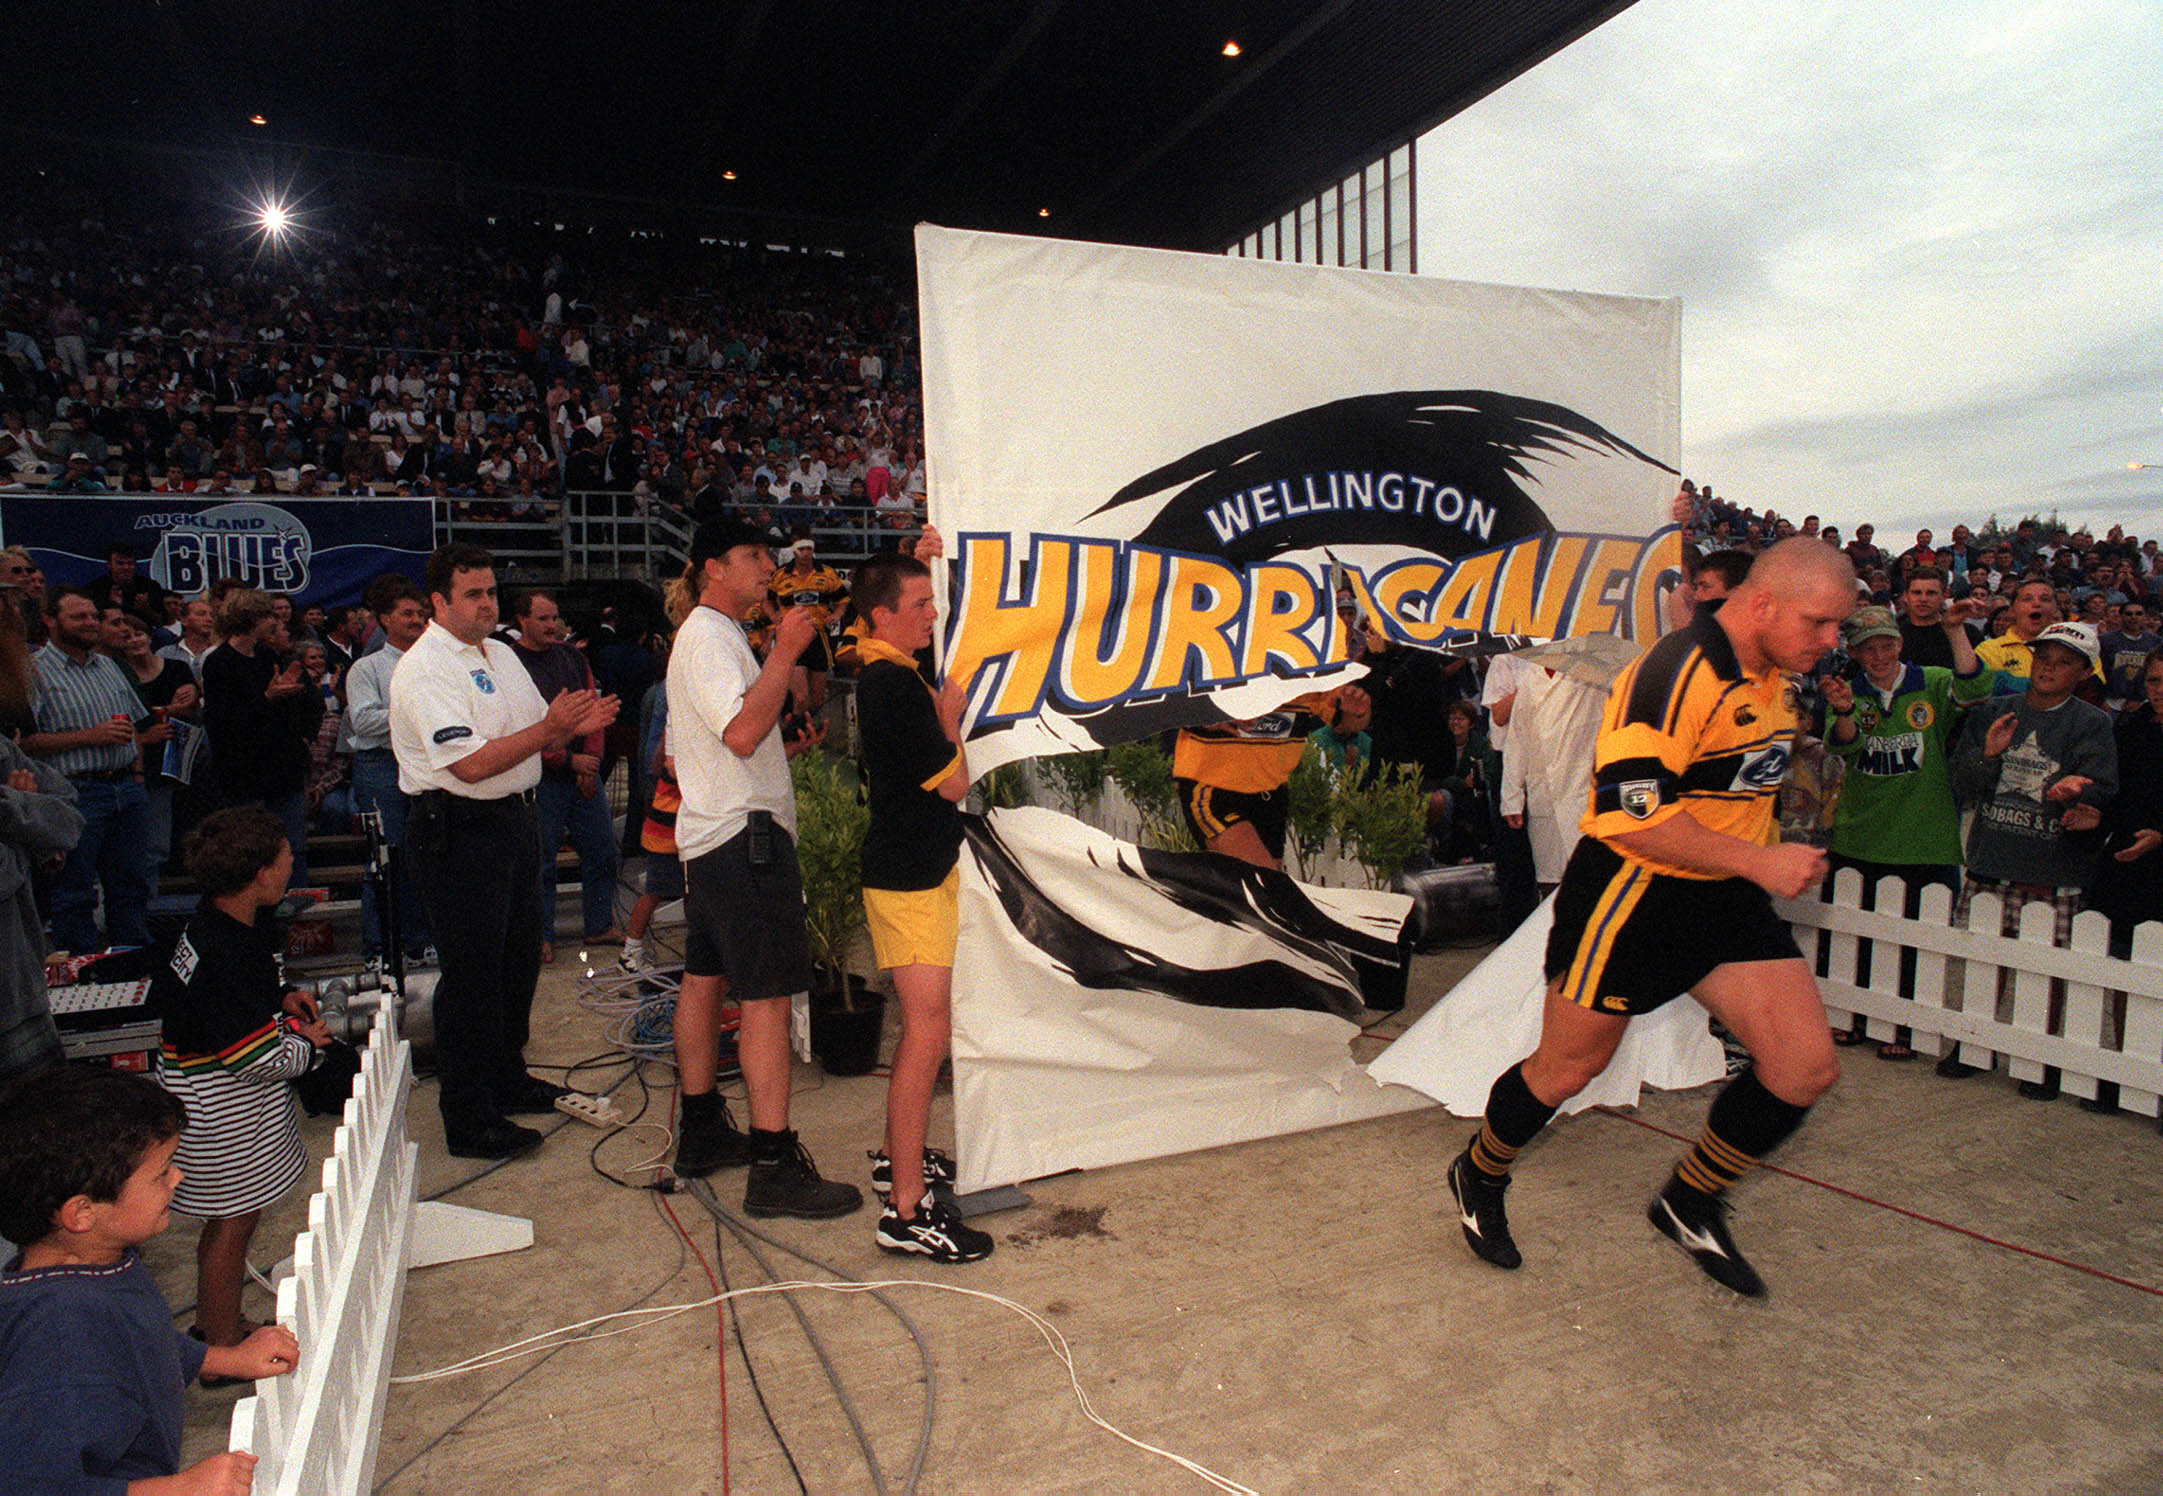 FARMLANDS FLASHBACK: THE FIRST MATCH – HURRICANES V BLUES, MARCH 1, 1996